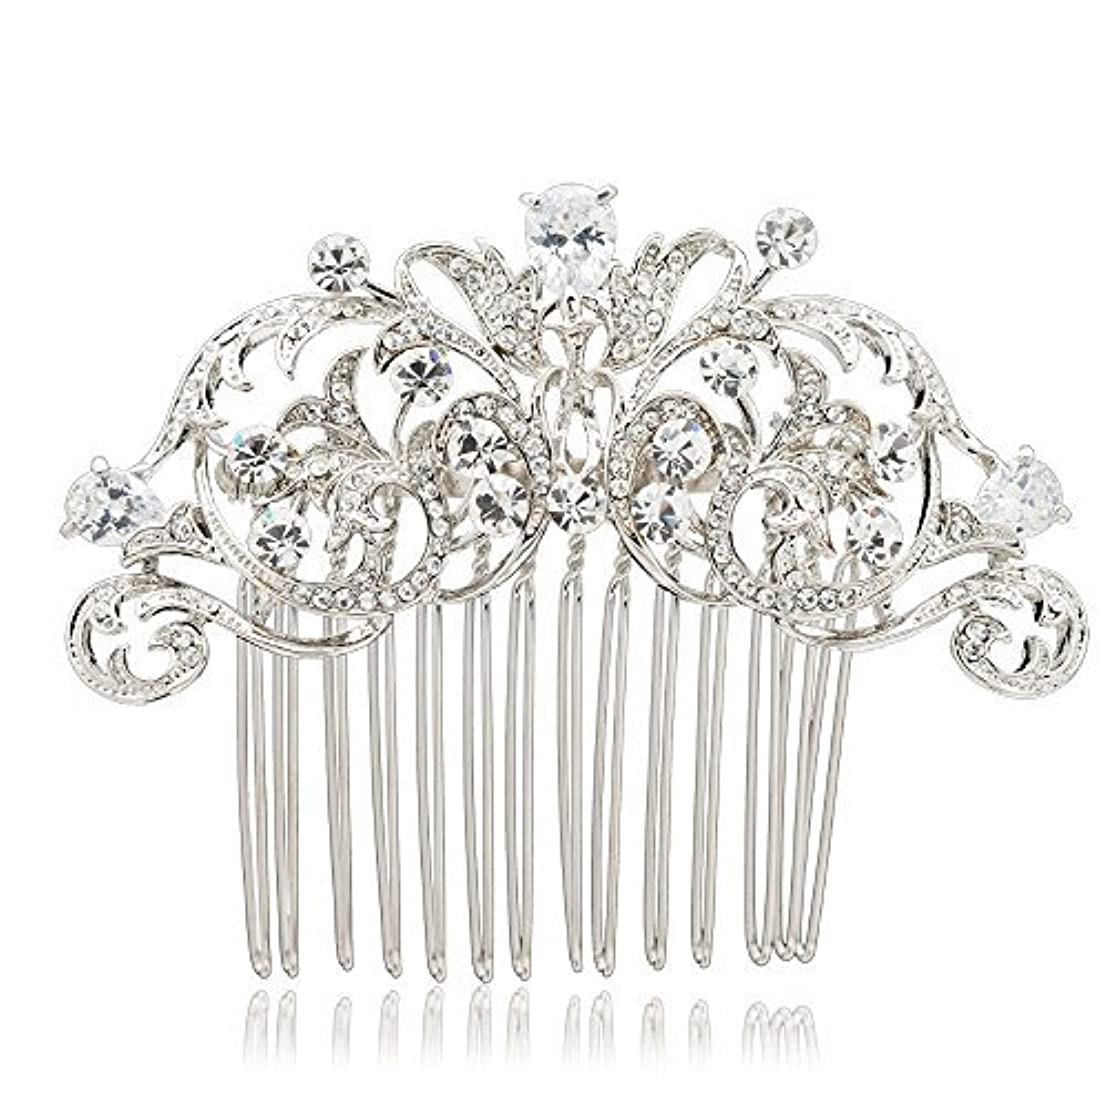 最愛のにぎやか急勾配のSEPBRIDALS Crystal Rhinestone Hair Side Comb Pins Bridal Wedding Women Hair Accessories Jewelry 2253R [並行輸入品]